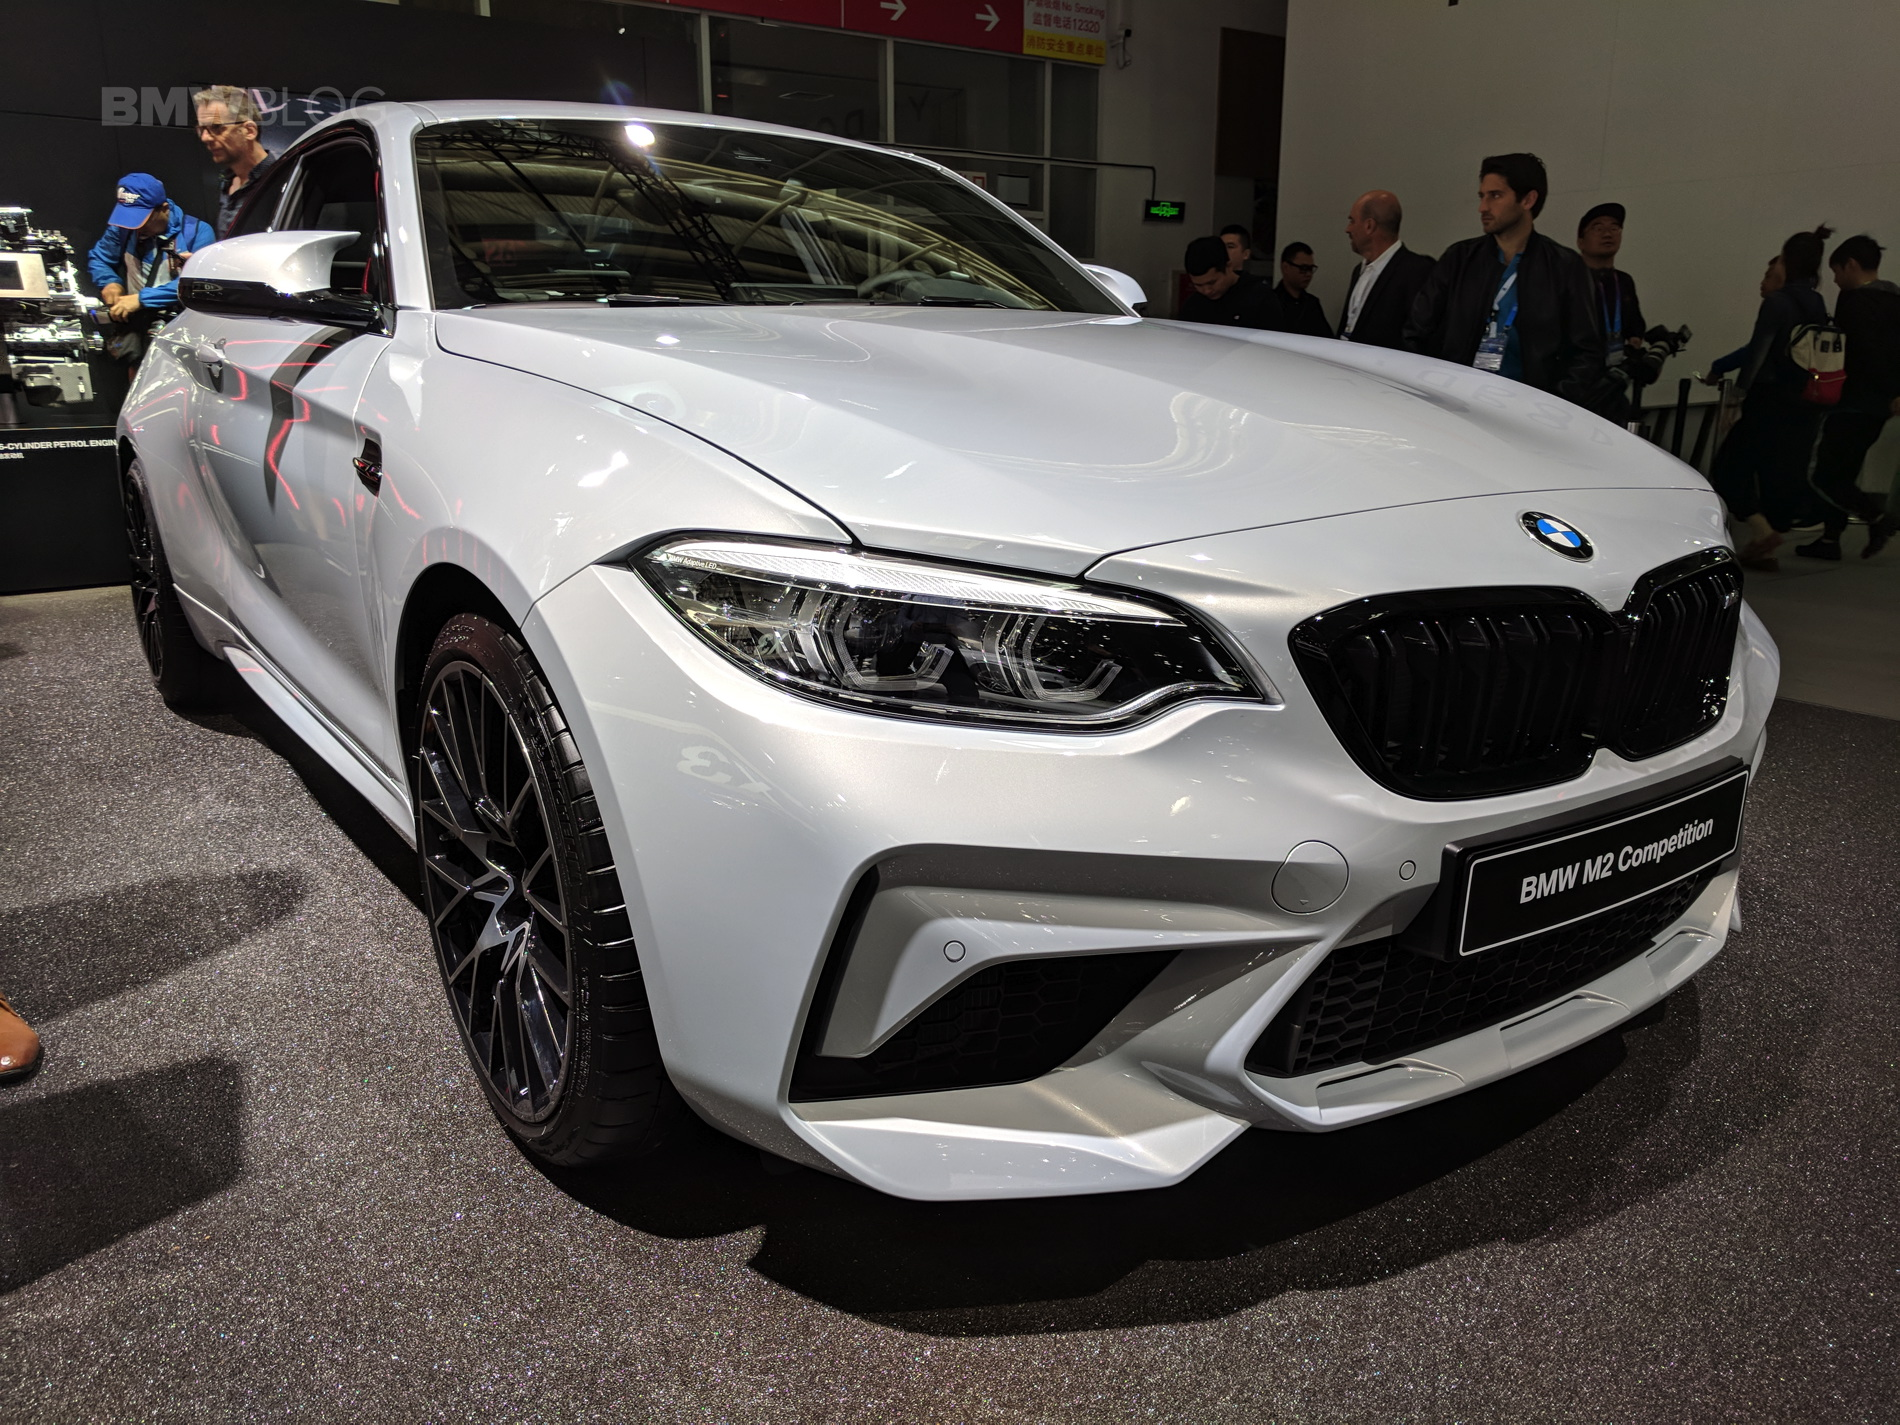 BMW M2 Competition engine photos 01